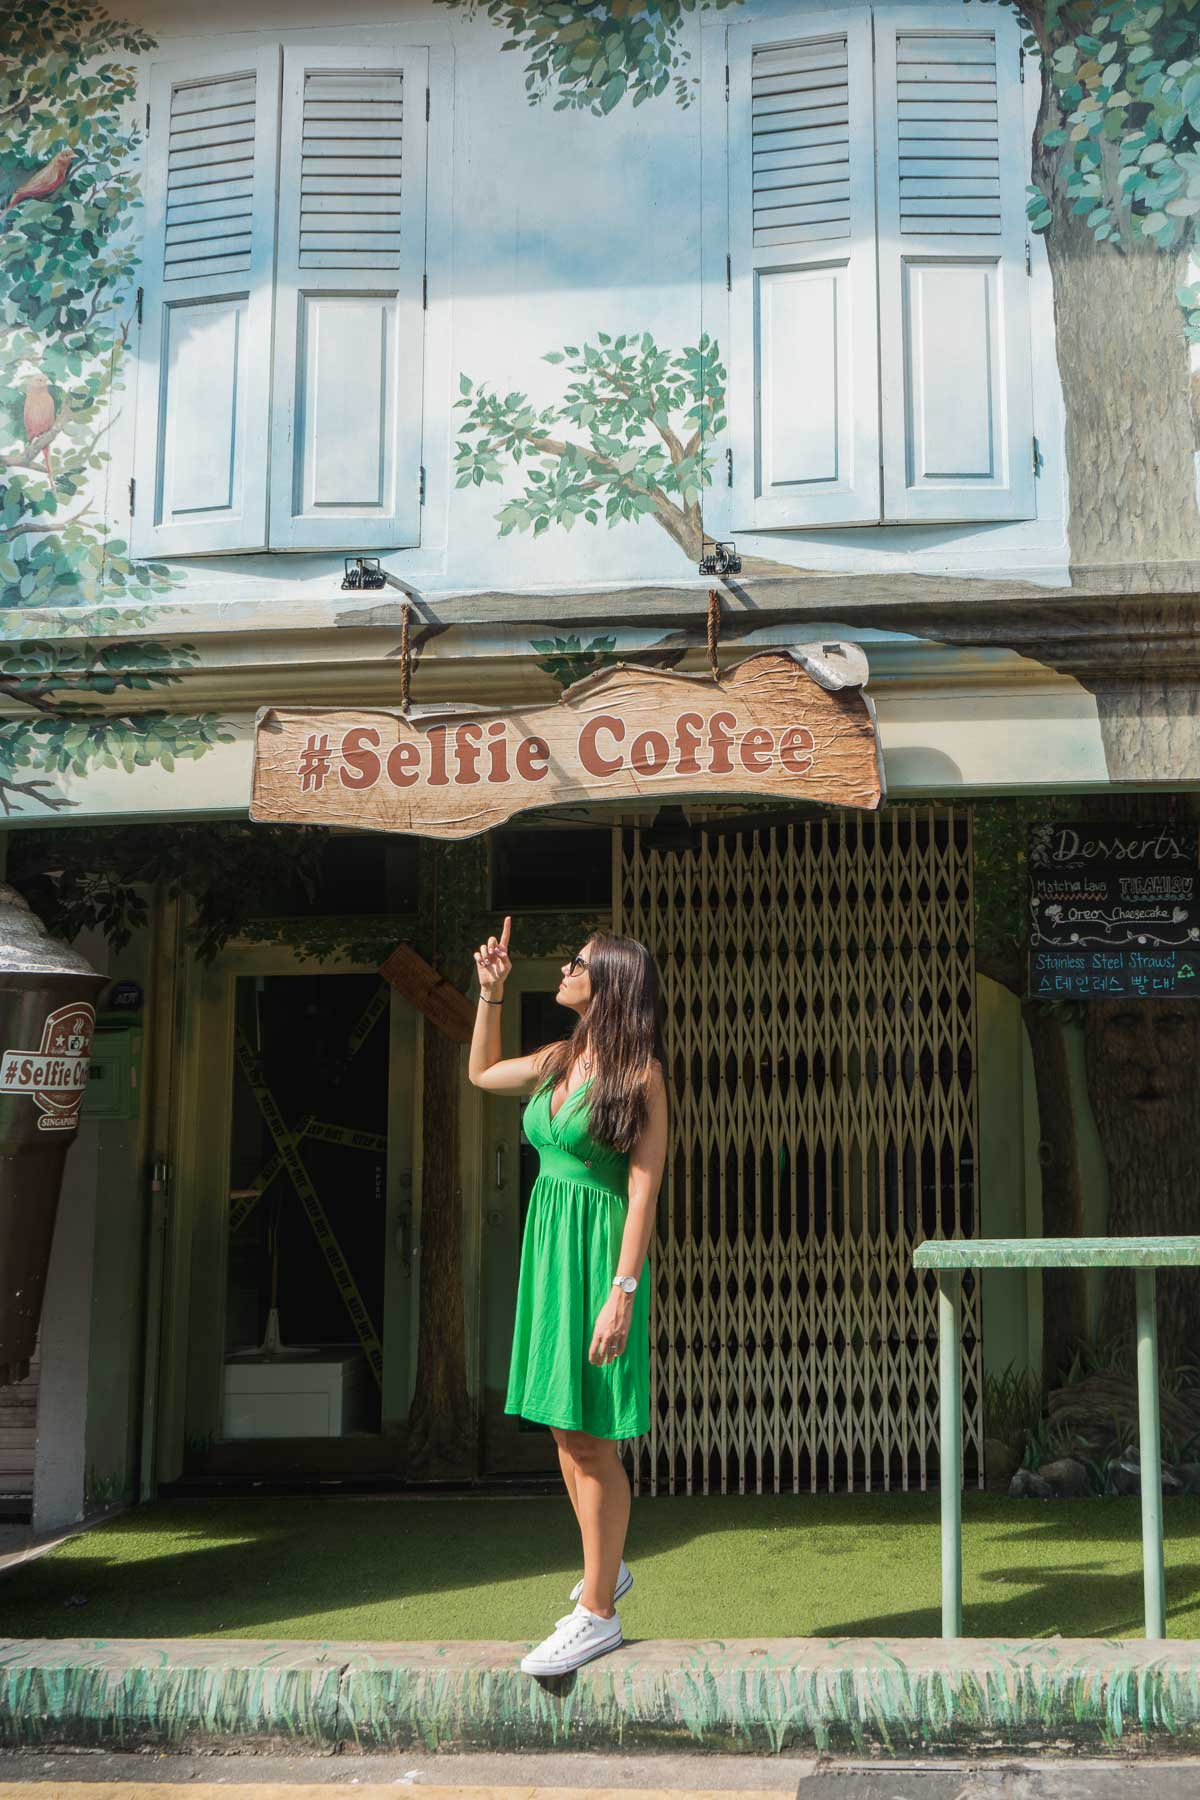 Girl in a green dress standing in front of the Selfie Coffee, Singapore